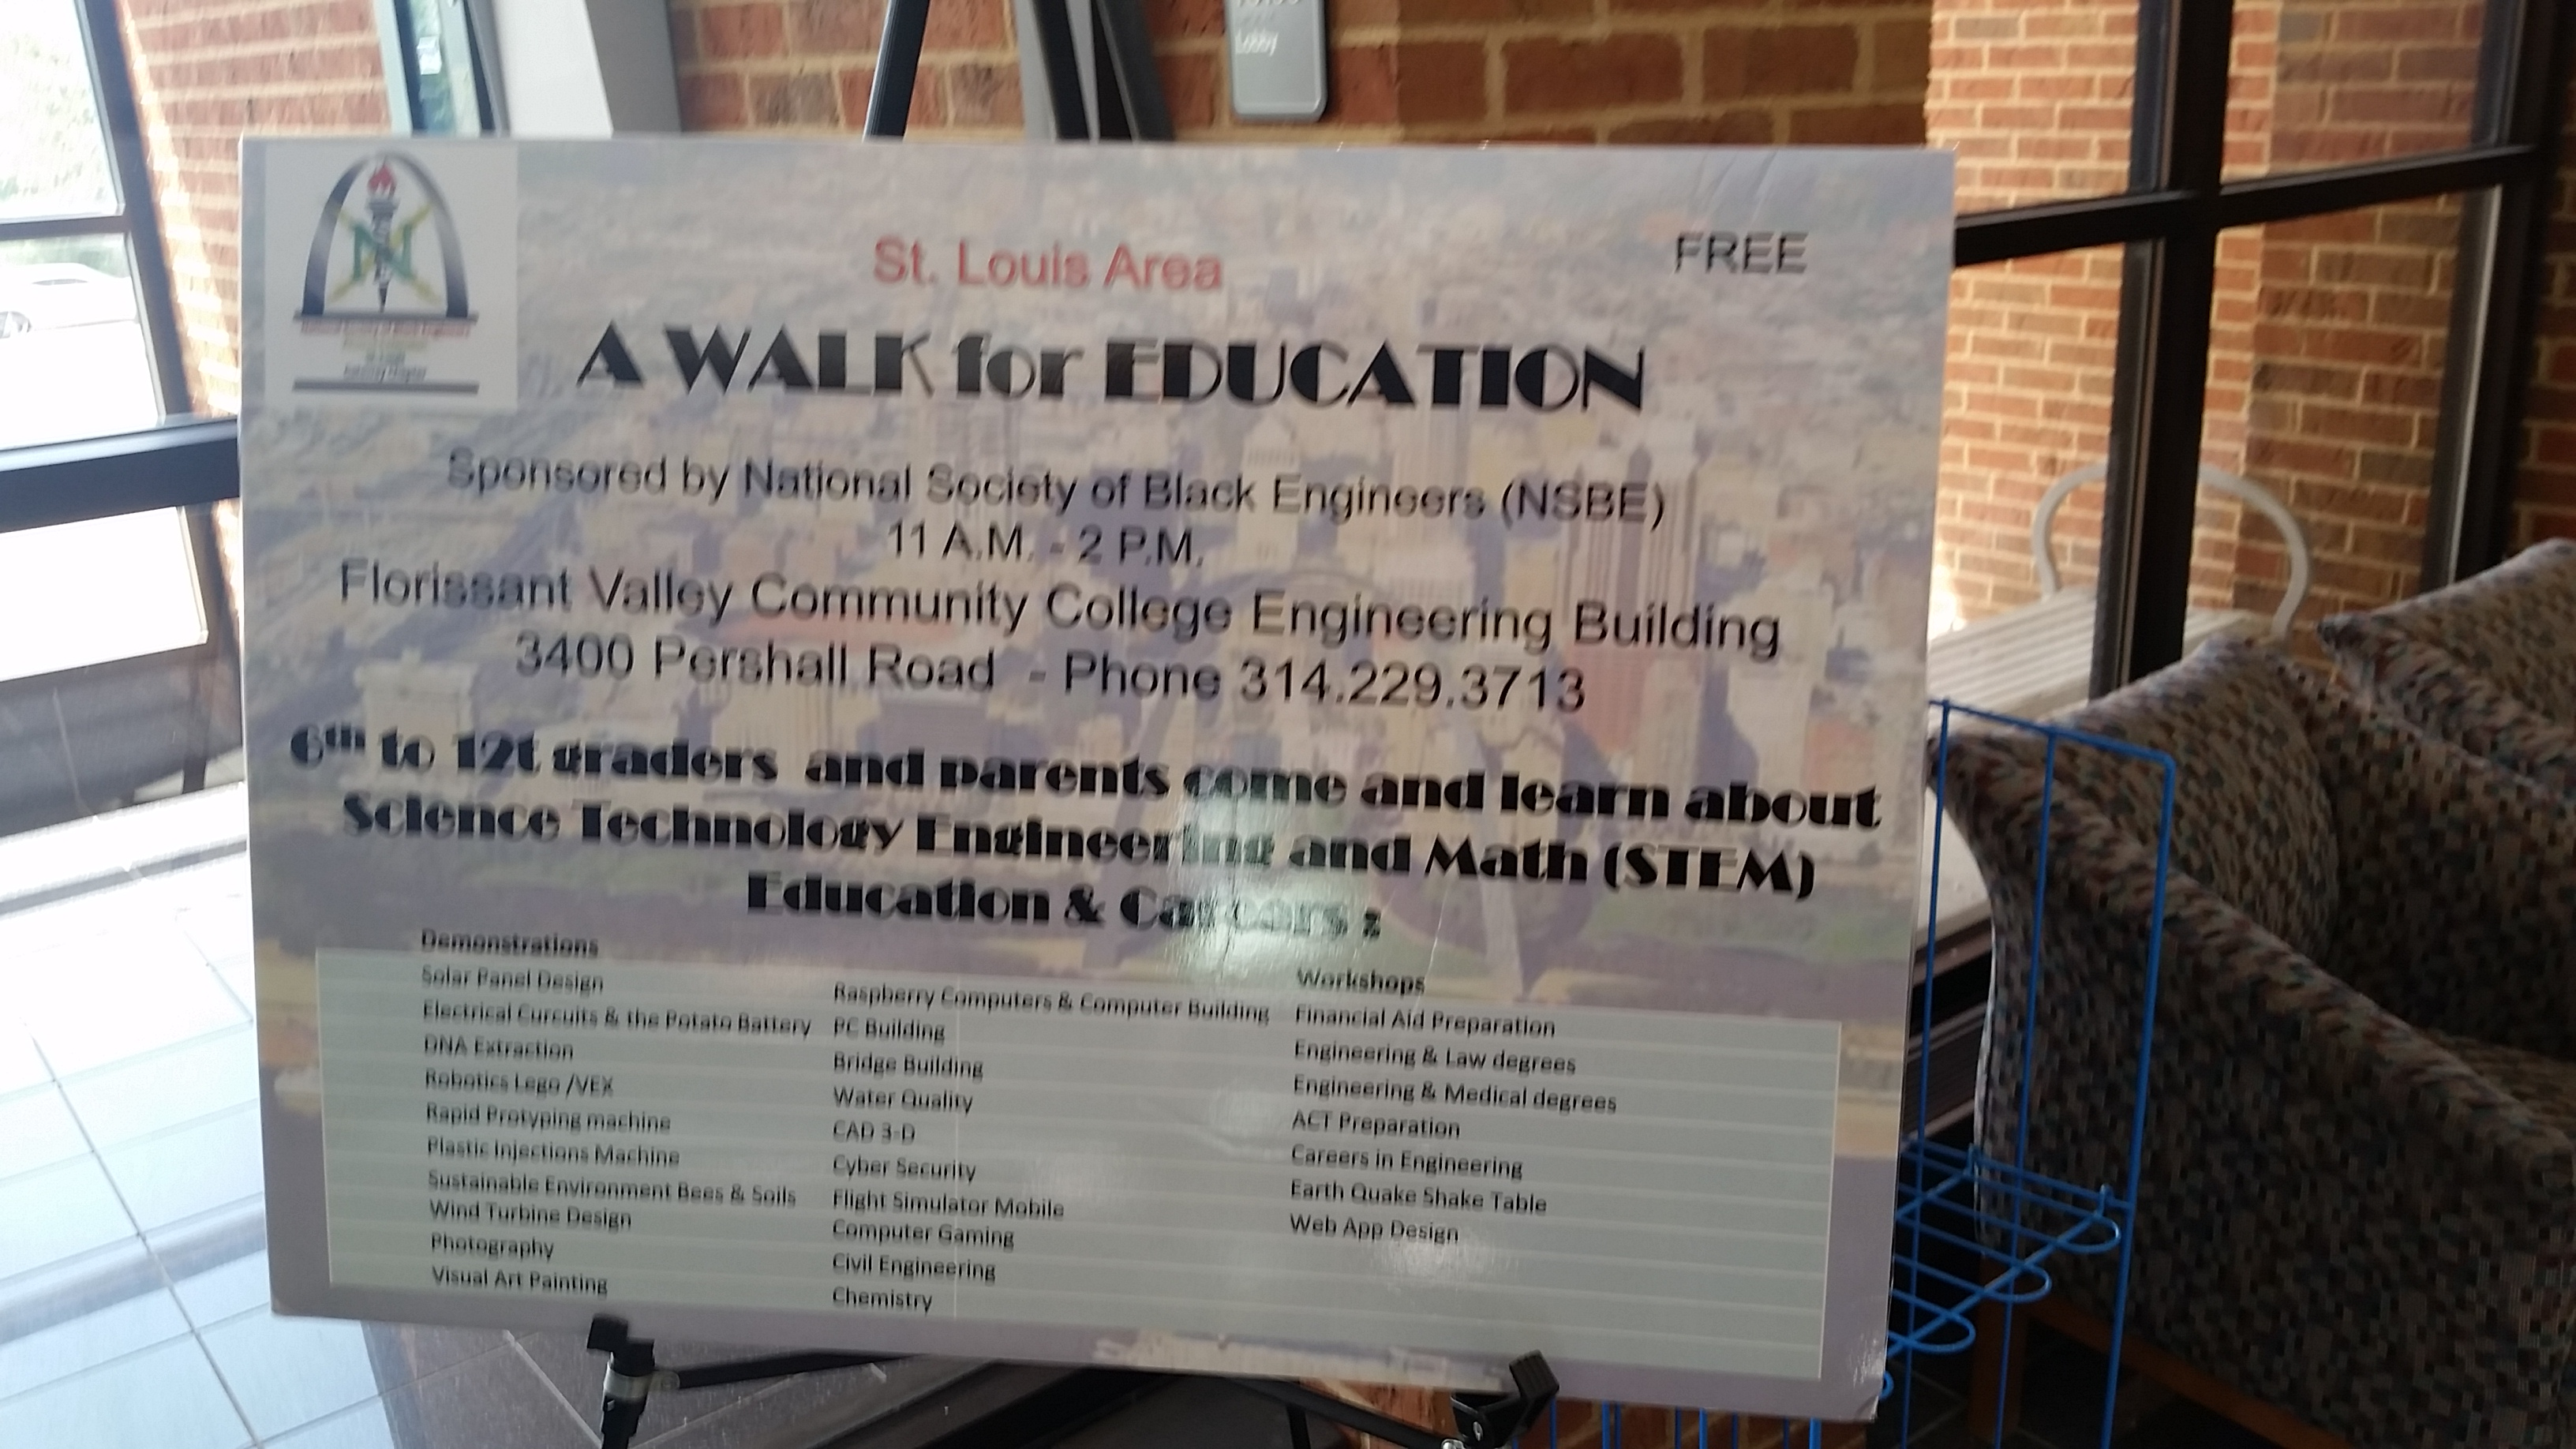 Walk for Education Overview